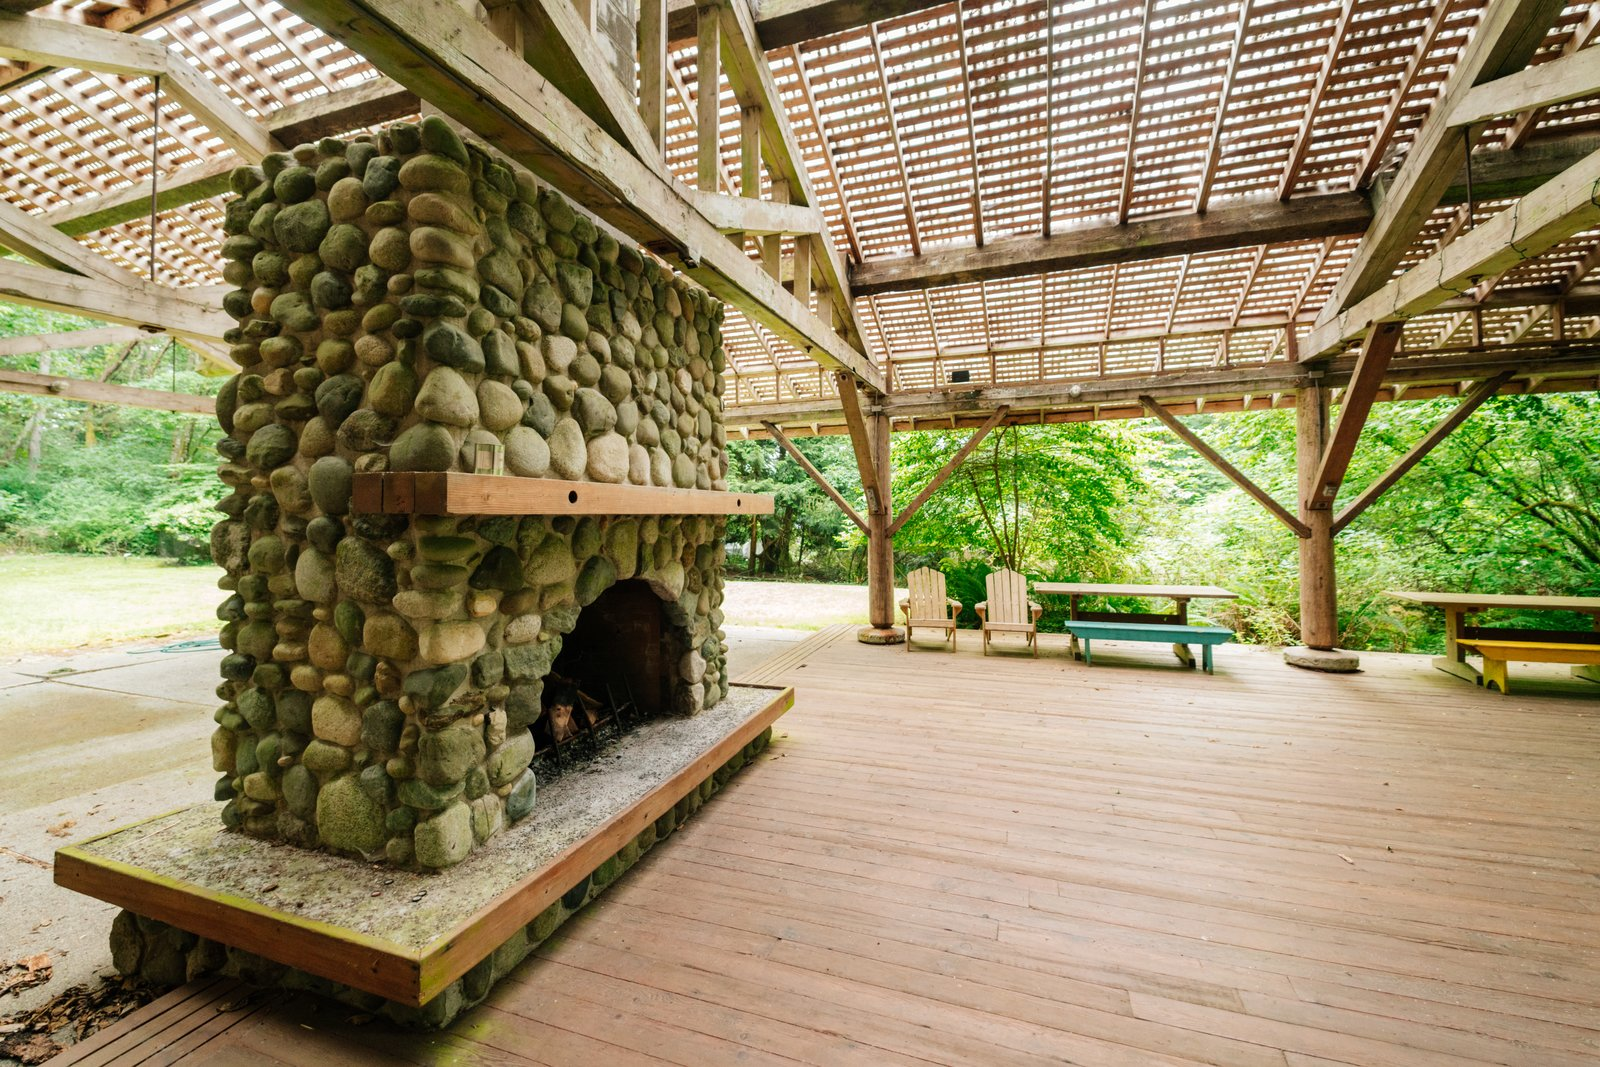 Photo 19 of 19 in Repurposed Ship Materials and 100-Year-Old Beams Make Up This Tree House-Like Home